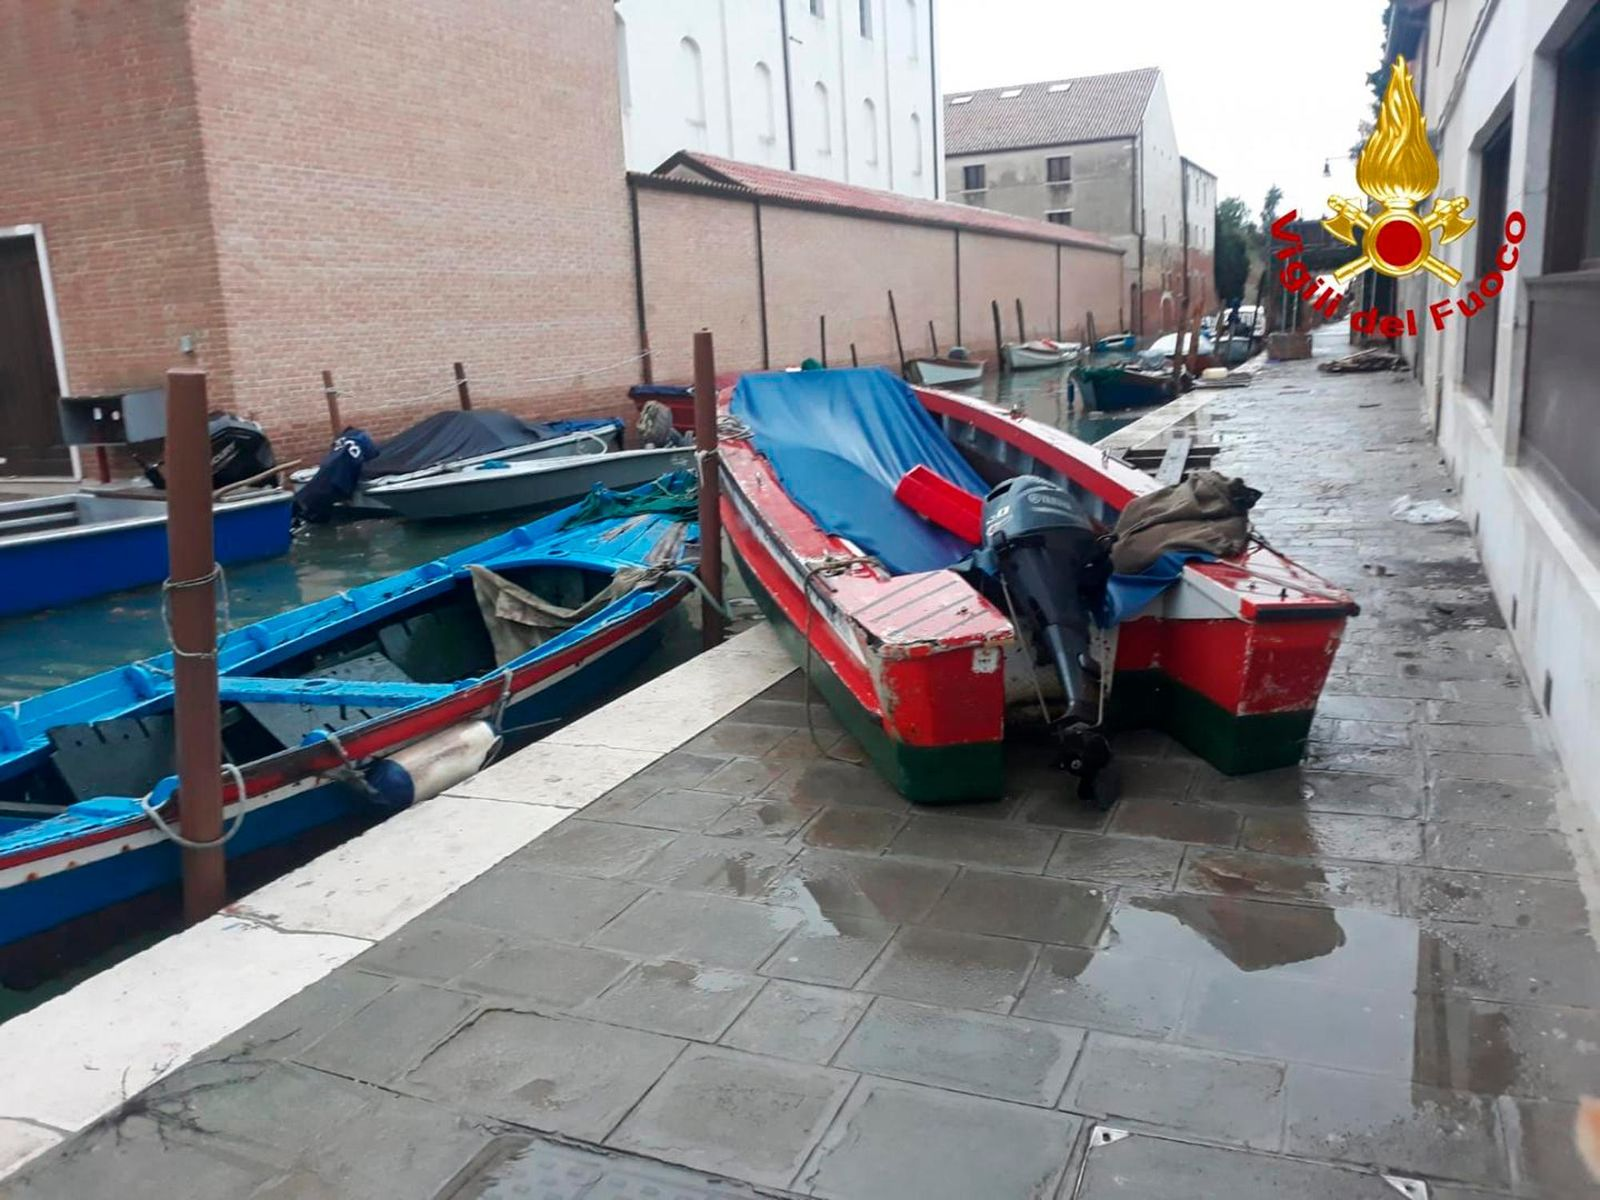 A stranded boat is seen on the dock after a high tide, in Venice, Italy, Wednesday, Nov. 13, 2019. (Italian Firefighters Vigili del Fuoco via AP)